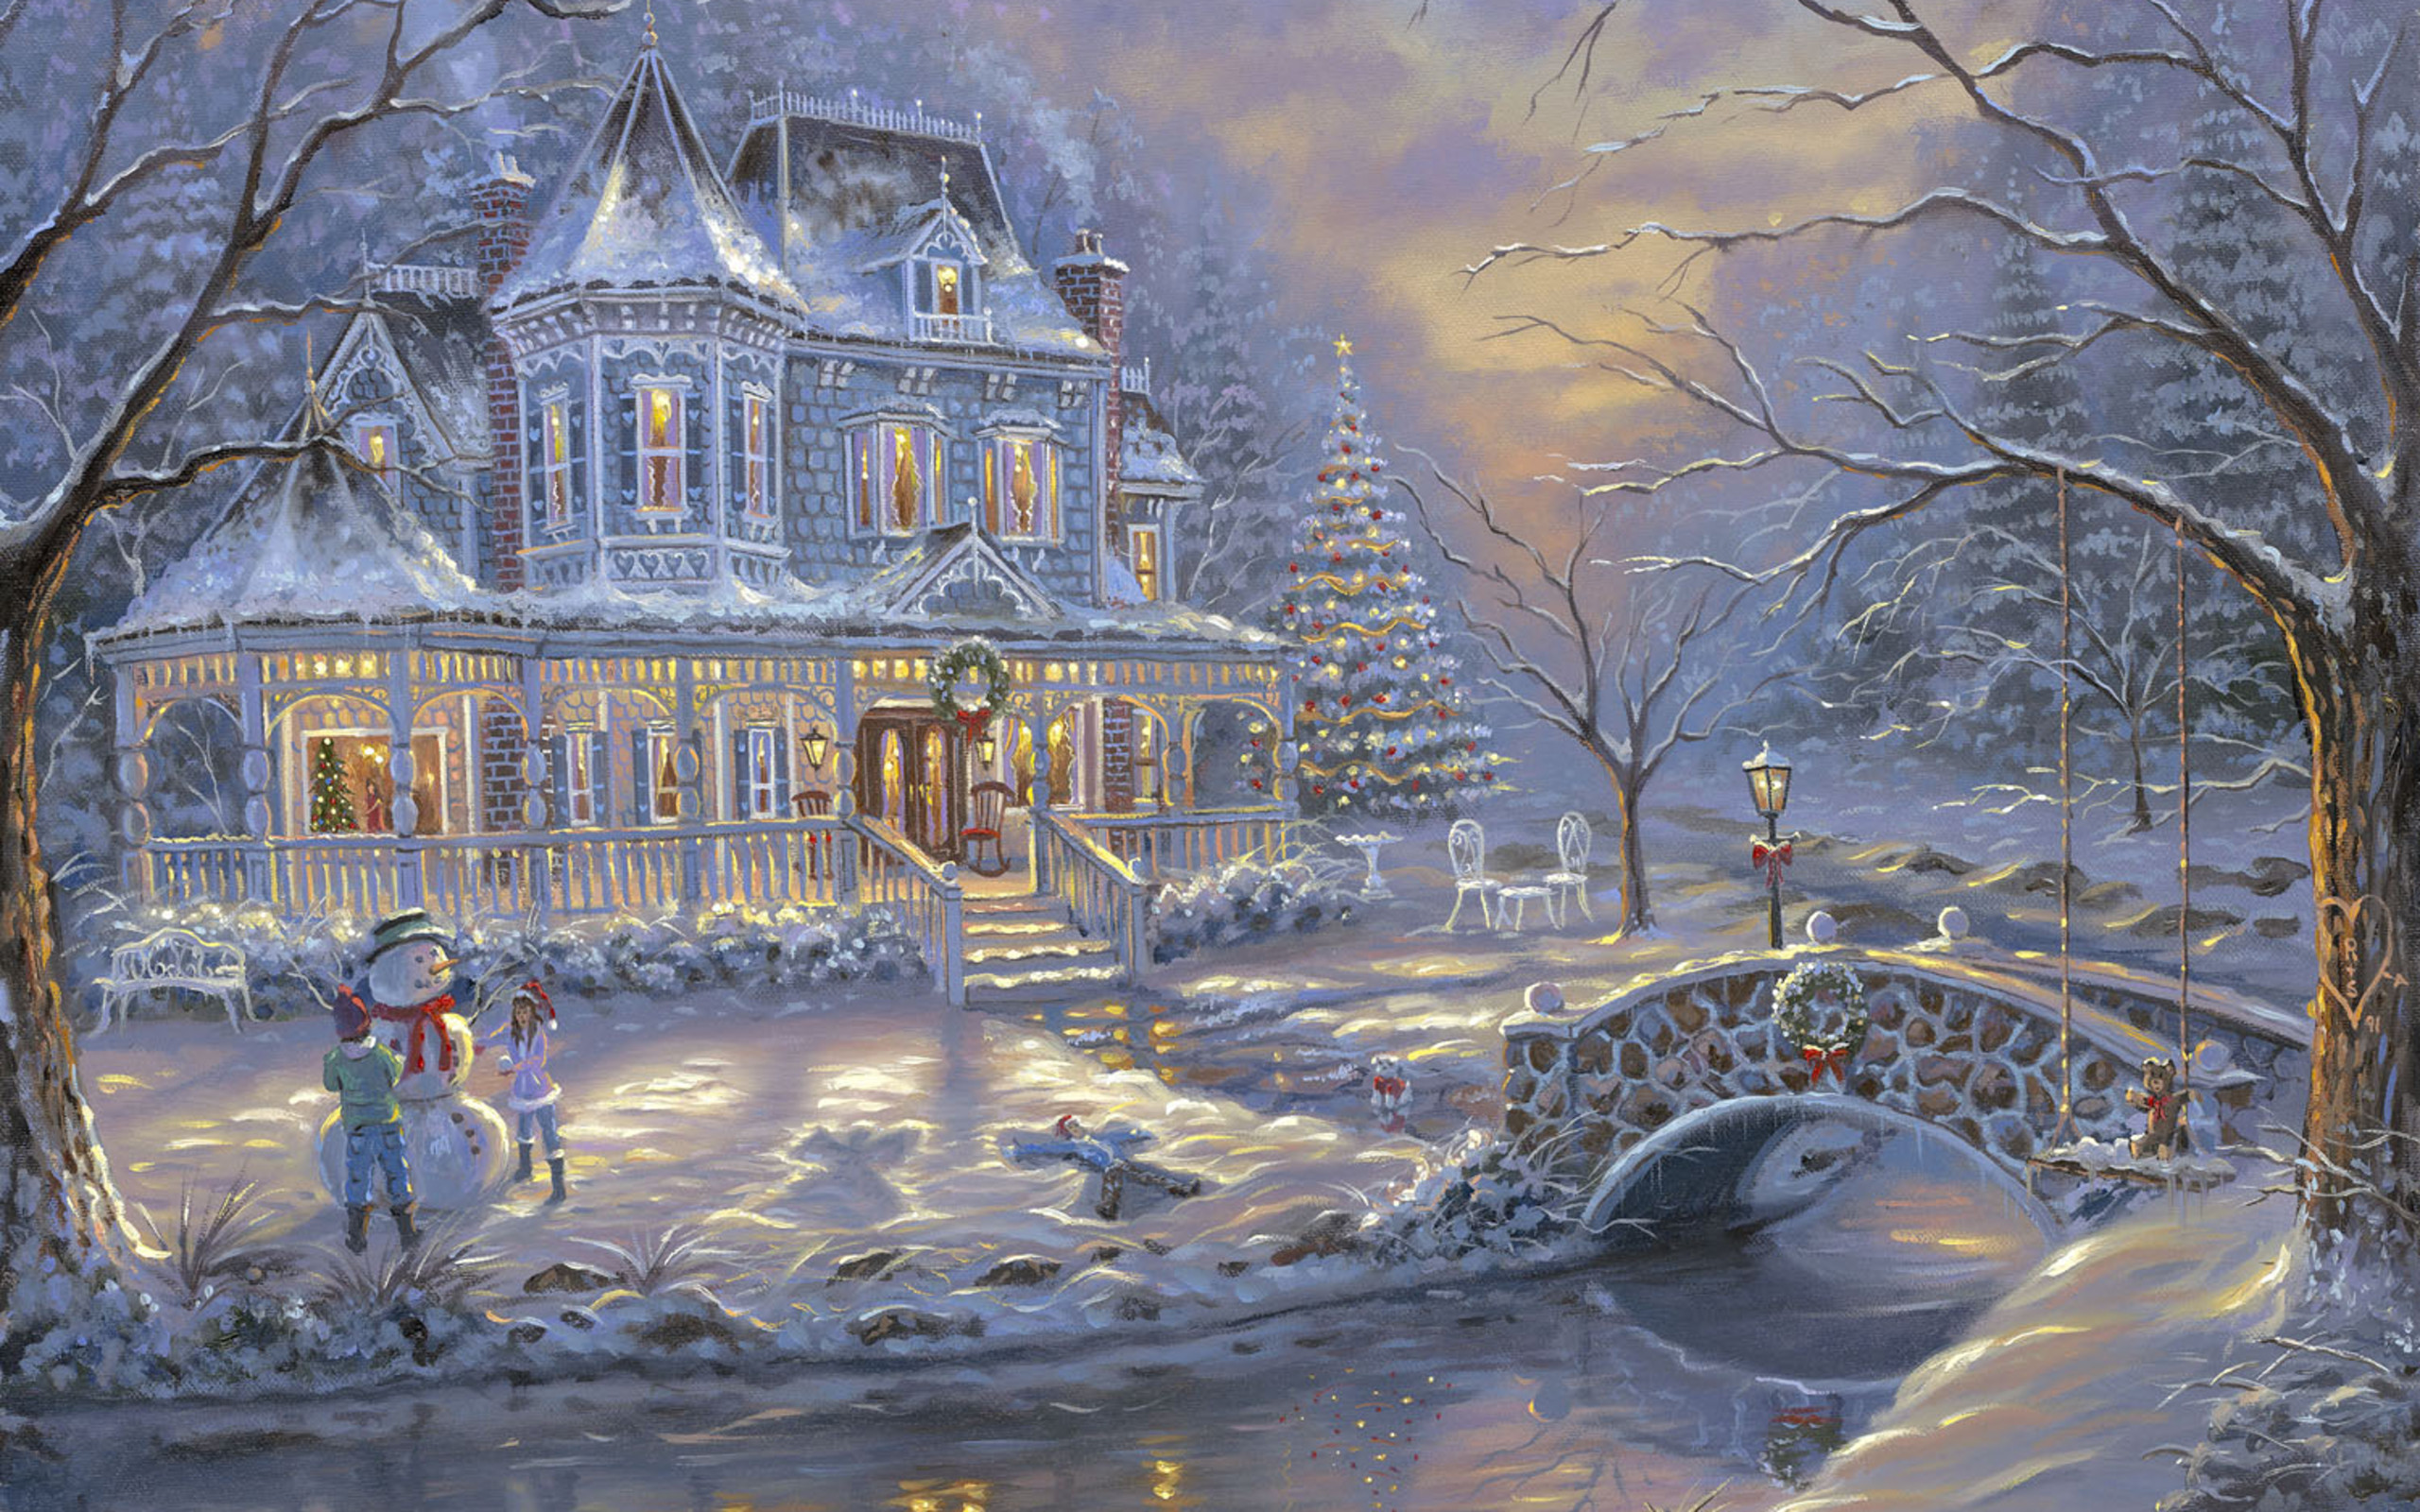 Res: 2560x1600, Painting, Cottage, Tree, Snowman, Children, River, Hd, Wallpaper,